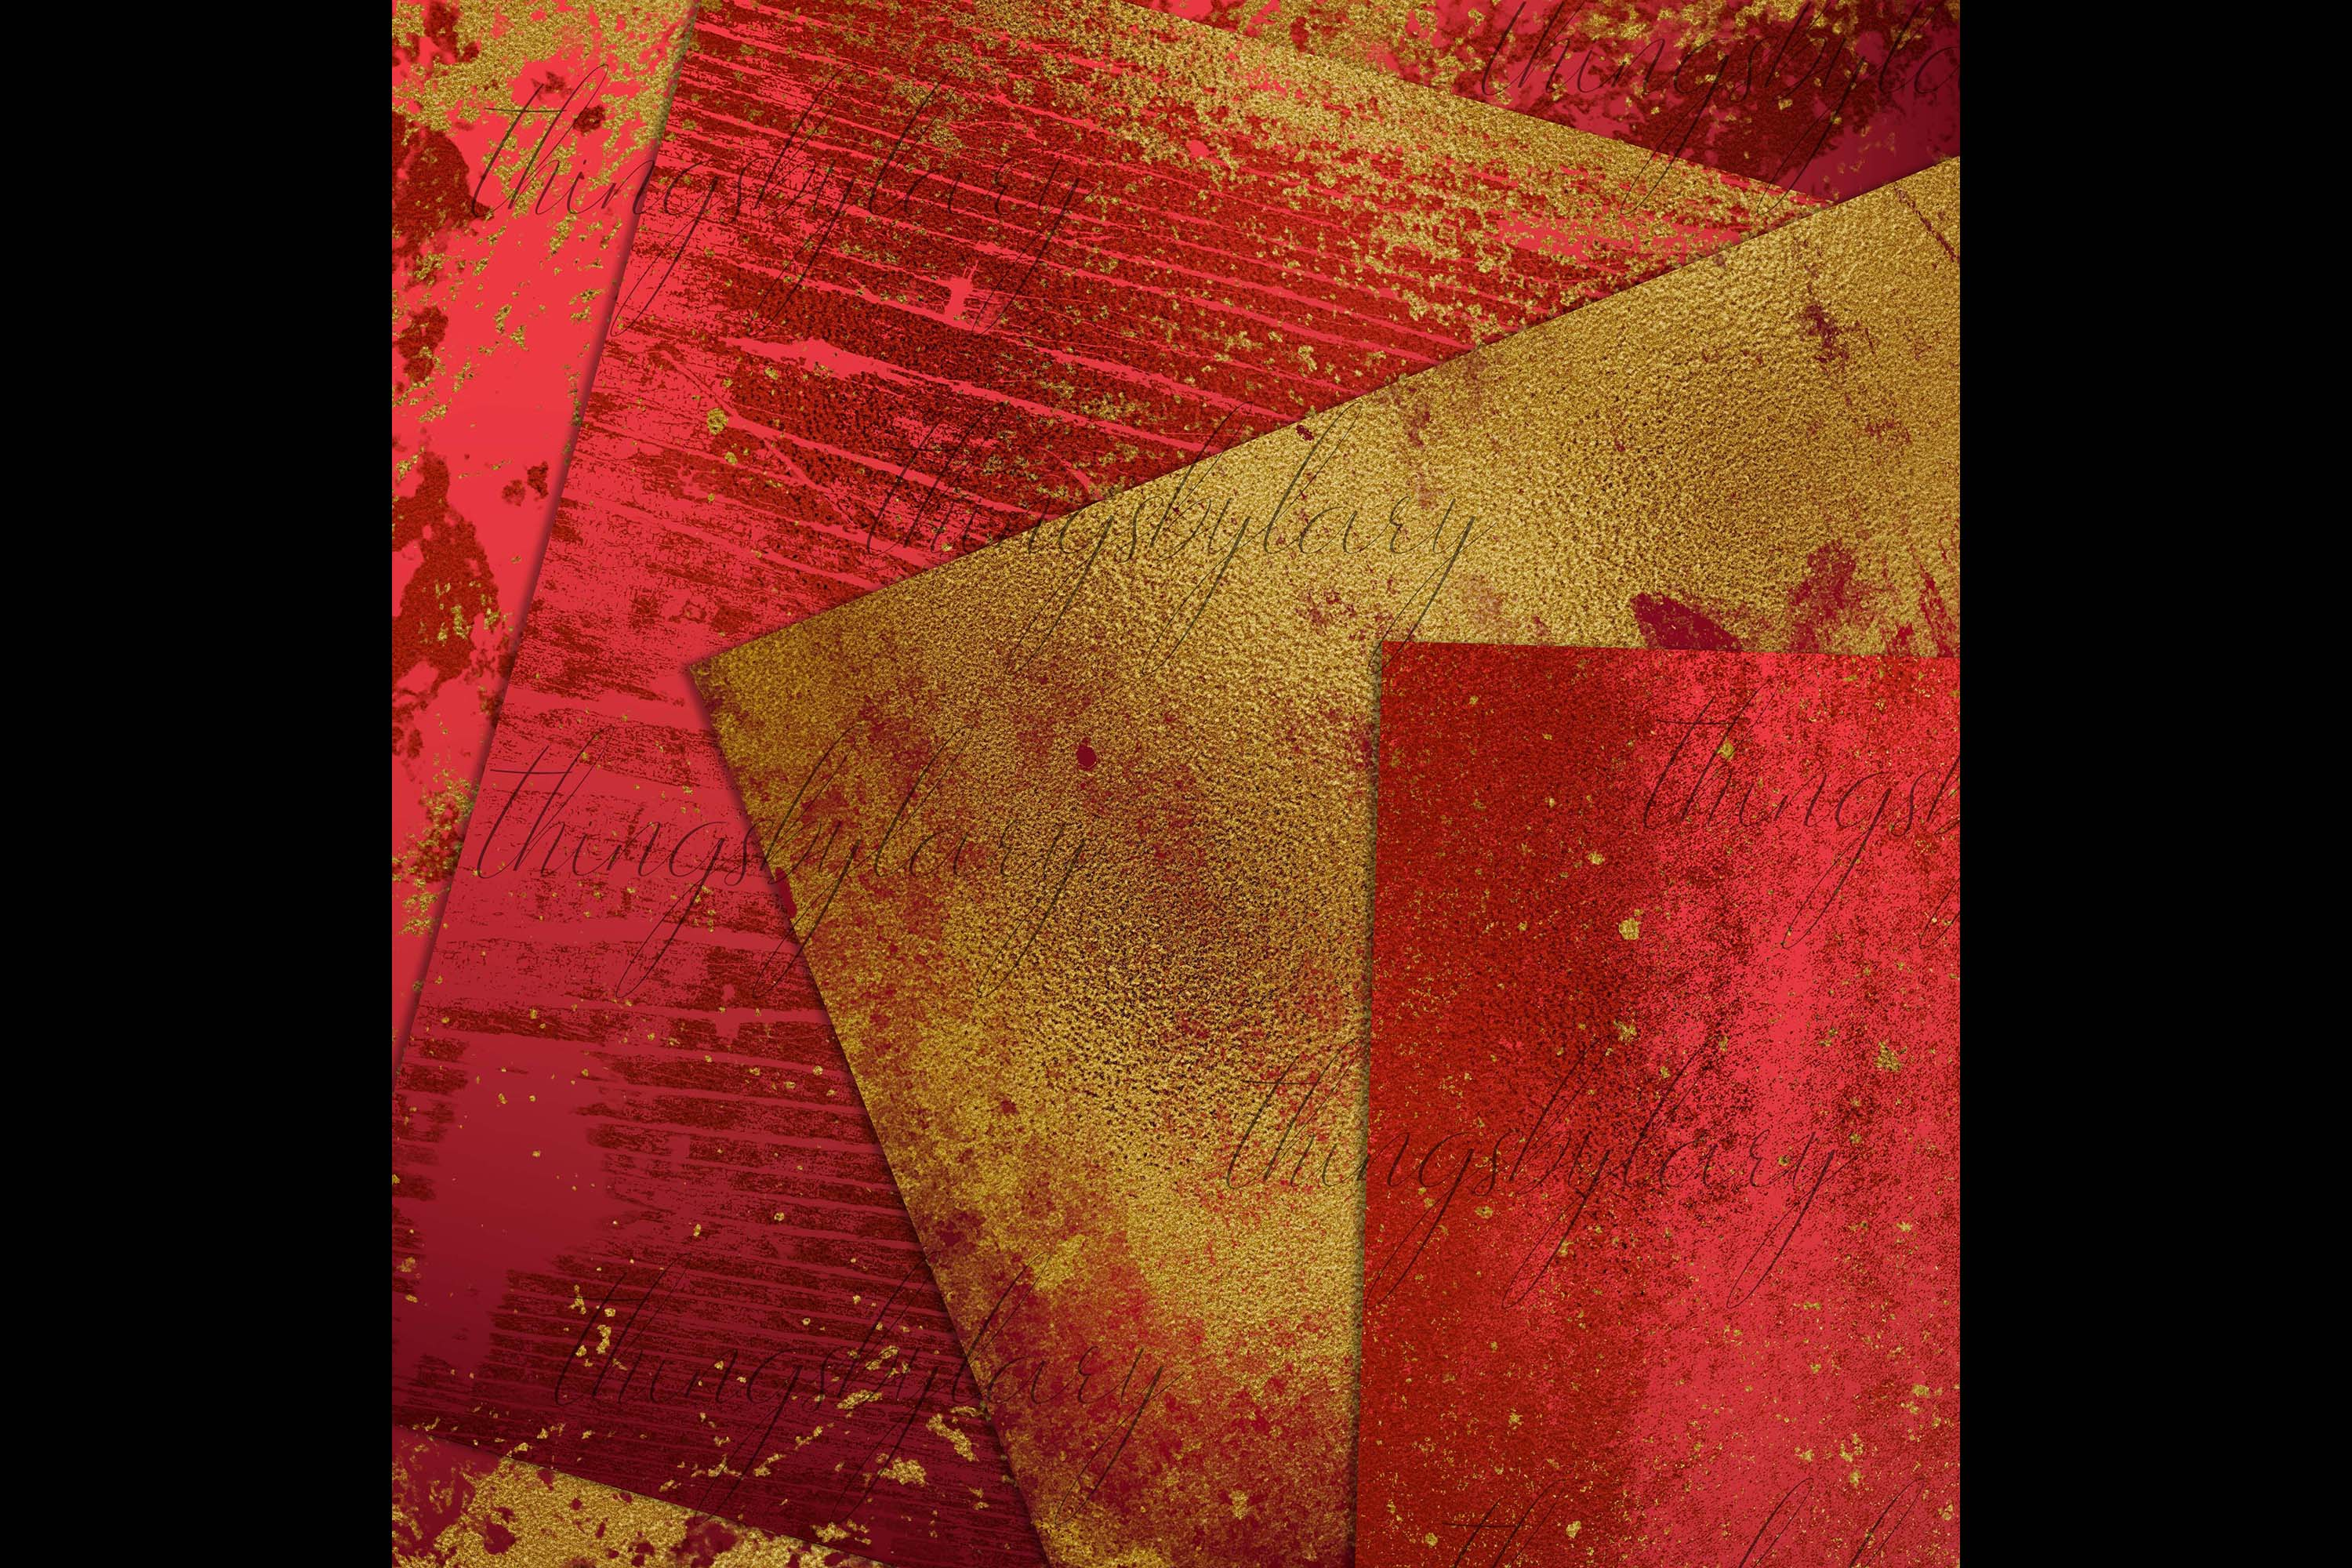 16 Distressed Red and Gold Artistic Painted Digital Papers example image 4